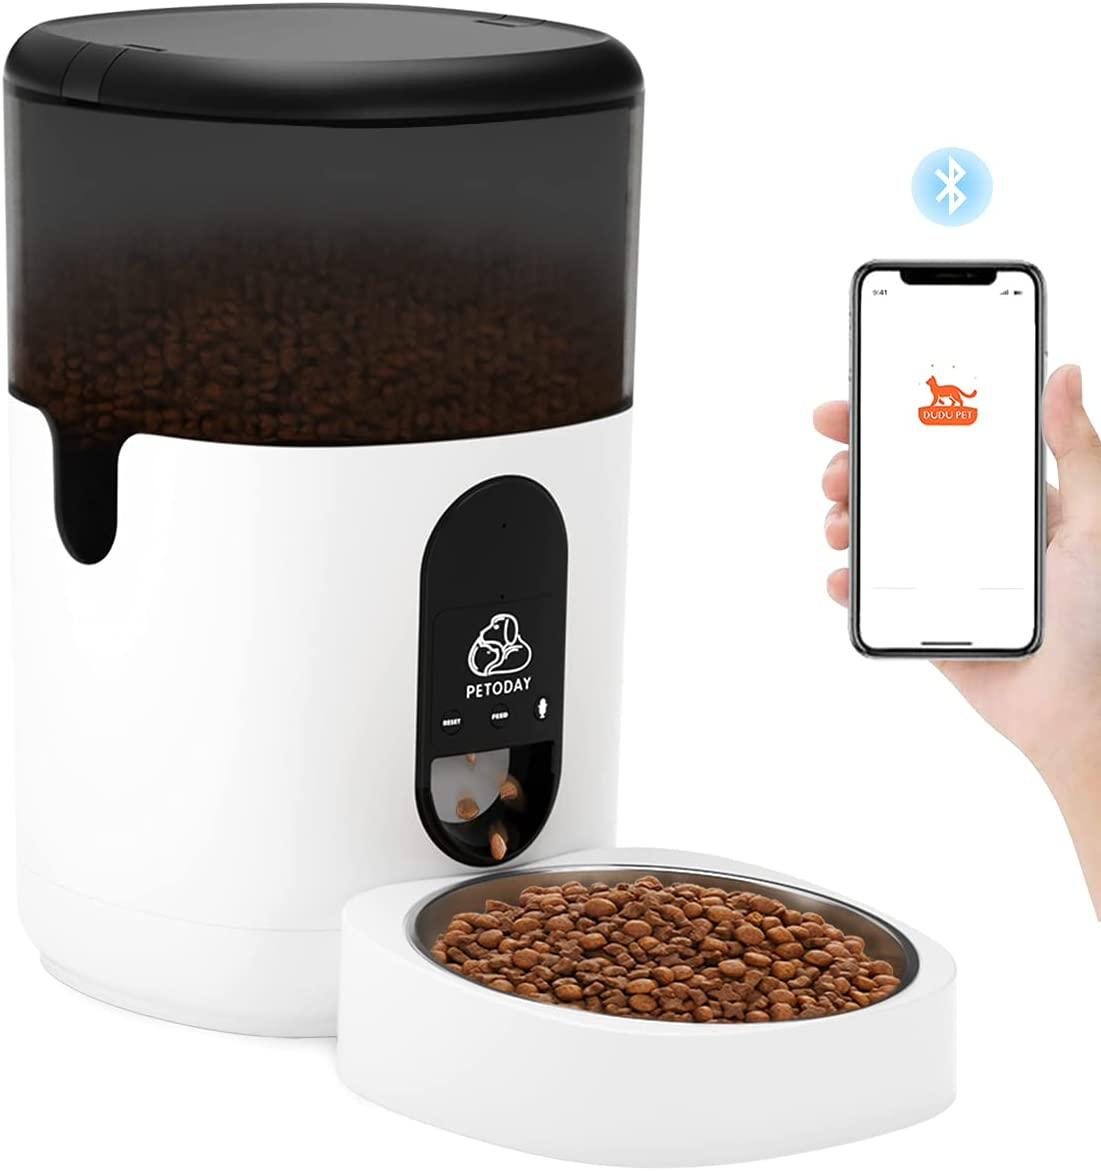 PETODAY 4L Automatic Cat Feeder,Bluetooth Enabled Timed Dog Feeder, Dog Food Dispenser with Programmable Timer,Voice Recording,Up to 20 Portion Control 8 Meals Per Day for Small to Medium Cats Dogs